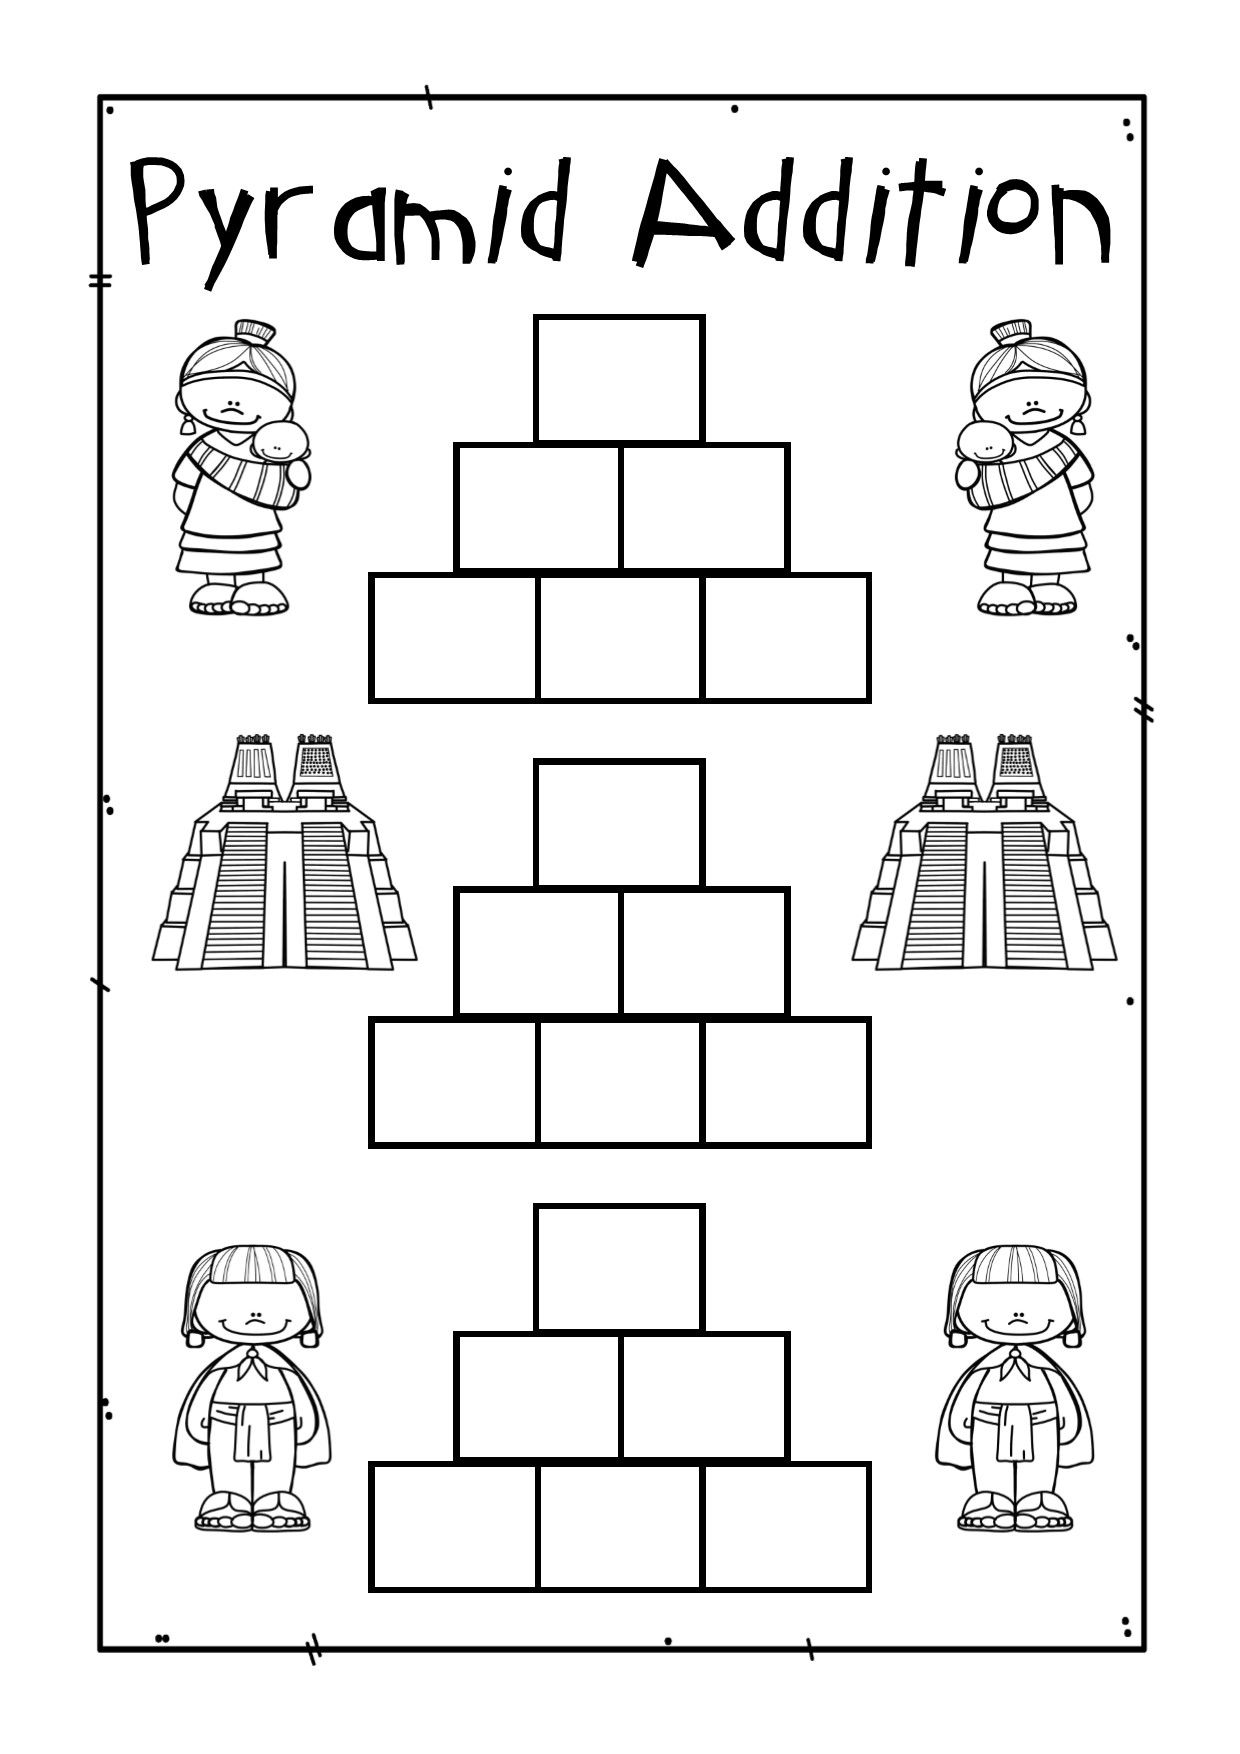 Uncategorized Math Pyramid Worksheet addition pyramids blank and ready to go in math worksheets pyramid addition